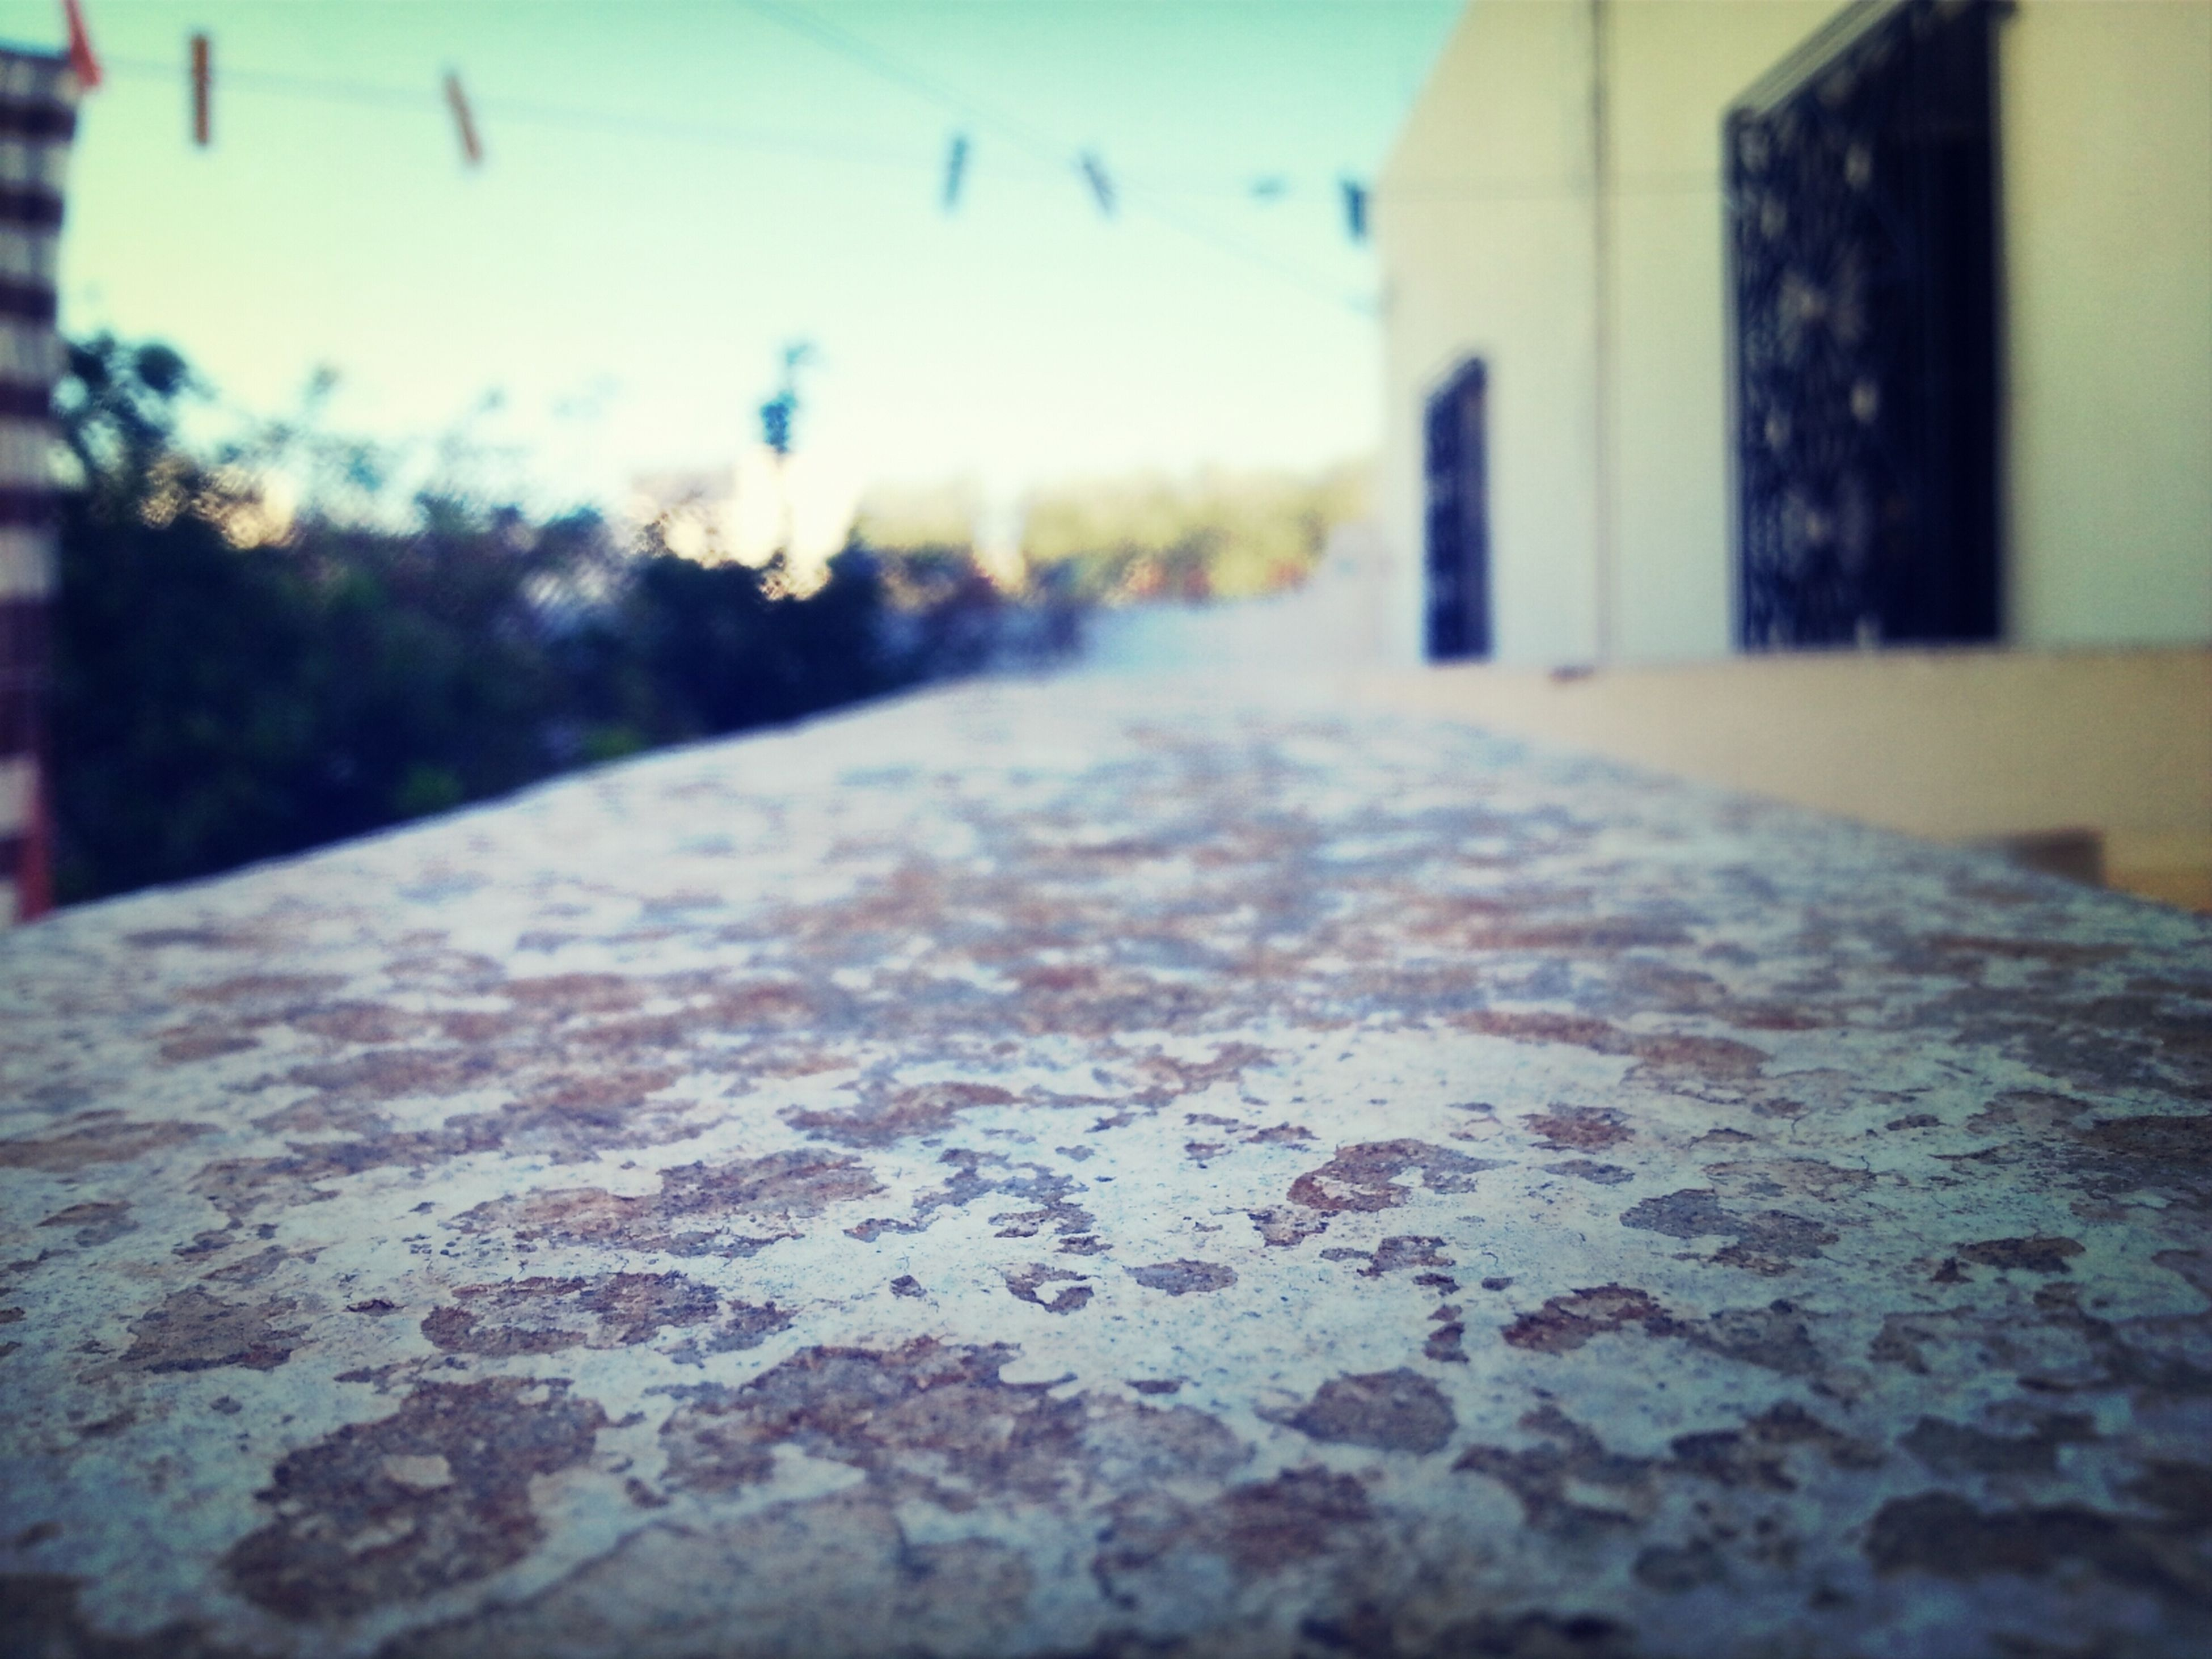 surface level, selective focus, built structure, architecture, focus on foreground, close-up, building exterior, the way forward, day, textured, house, outdoors, no people, diminishing perspective, street, wall - building feature, nature, sunlight, road, season